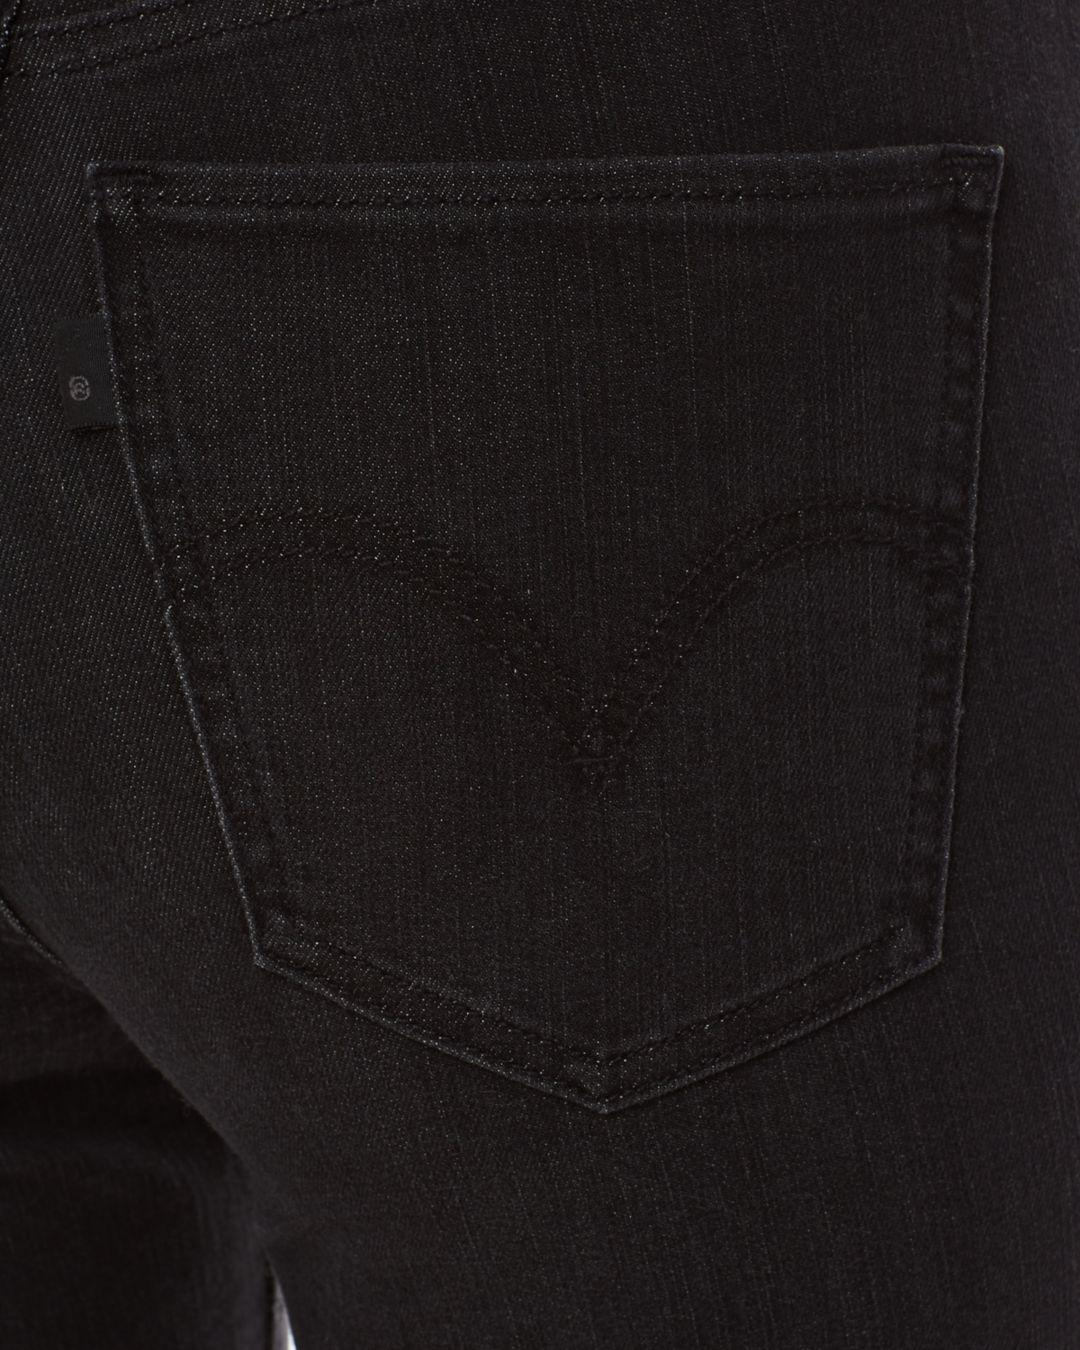 Levi's Denim Mile High Ankle Jeans In Boogie Night in Black